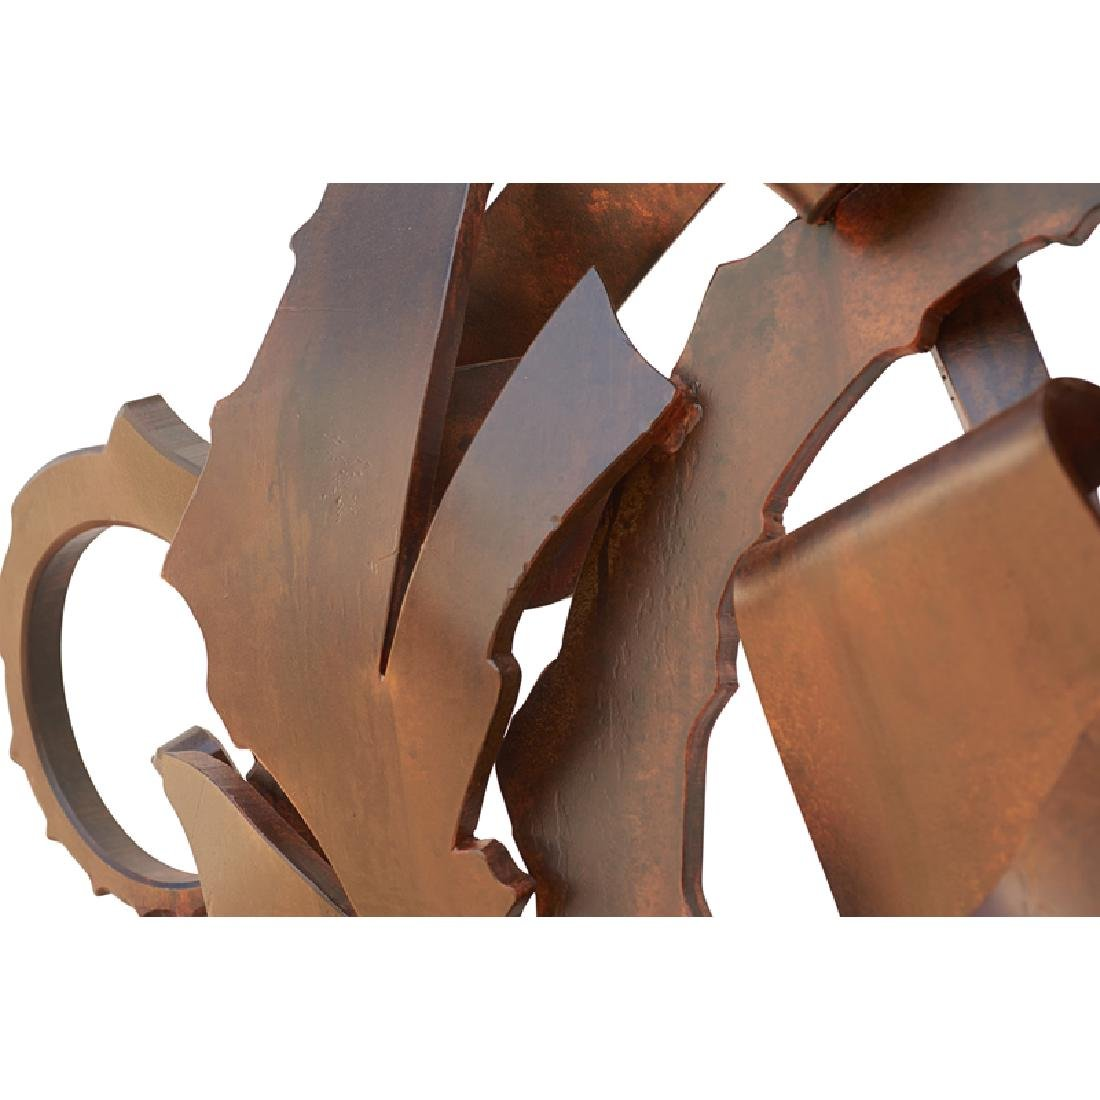 ALBERT PALEY Untitled (Garden Gate) - 9